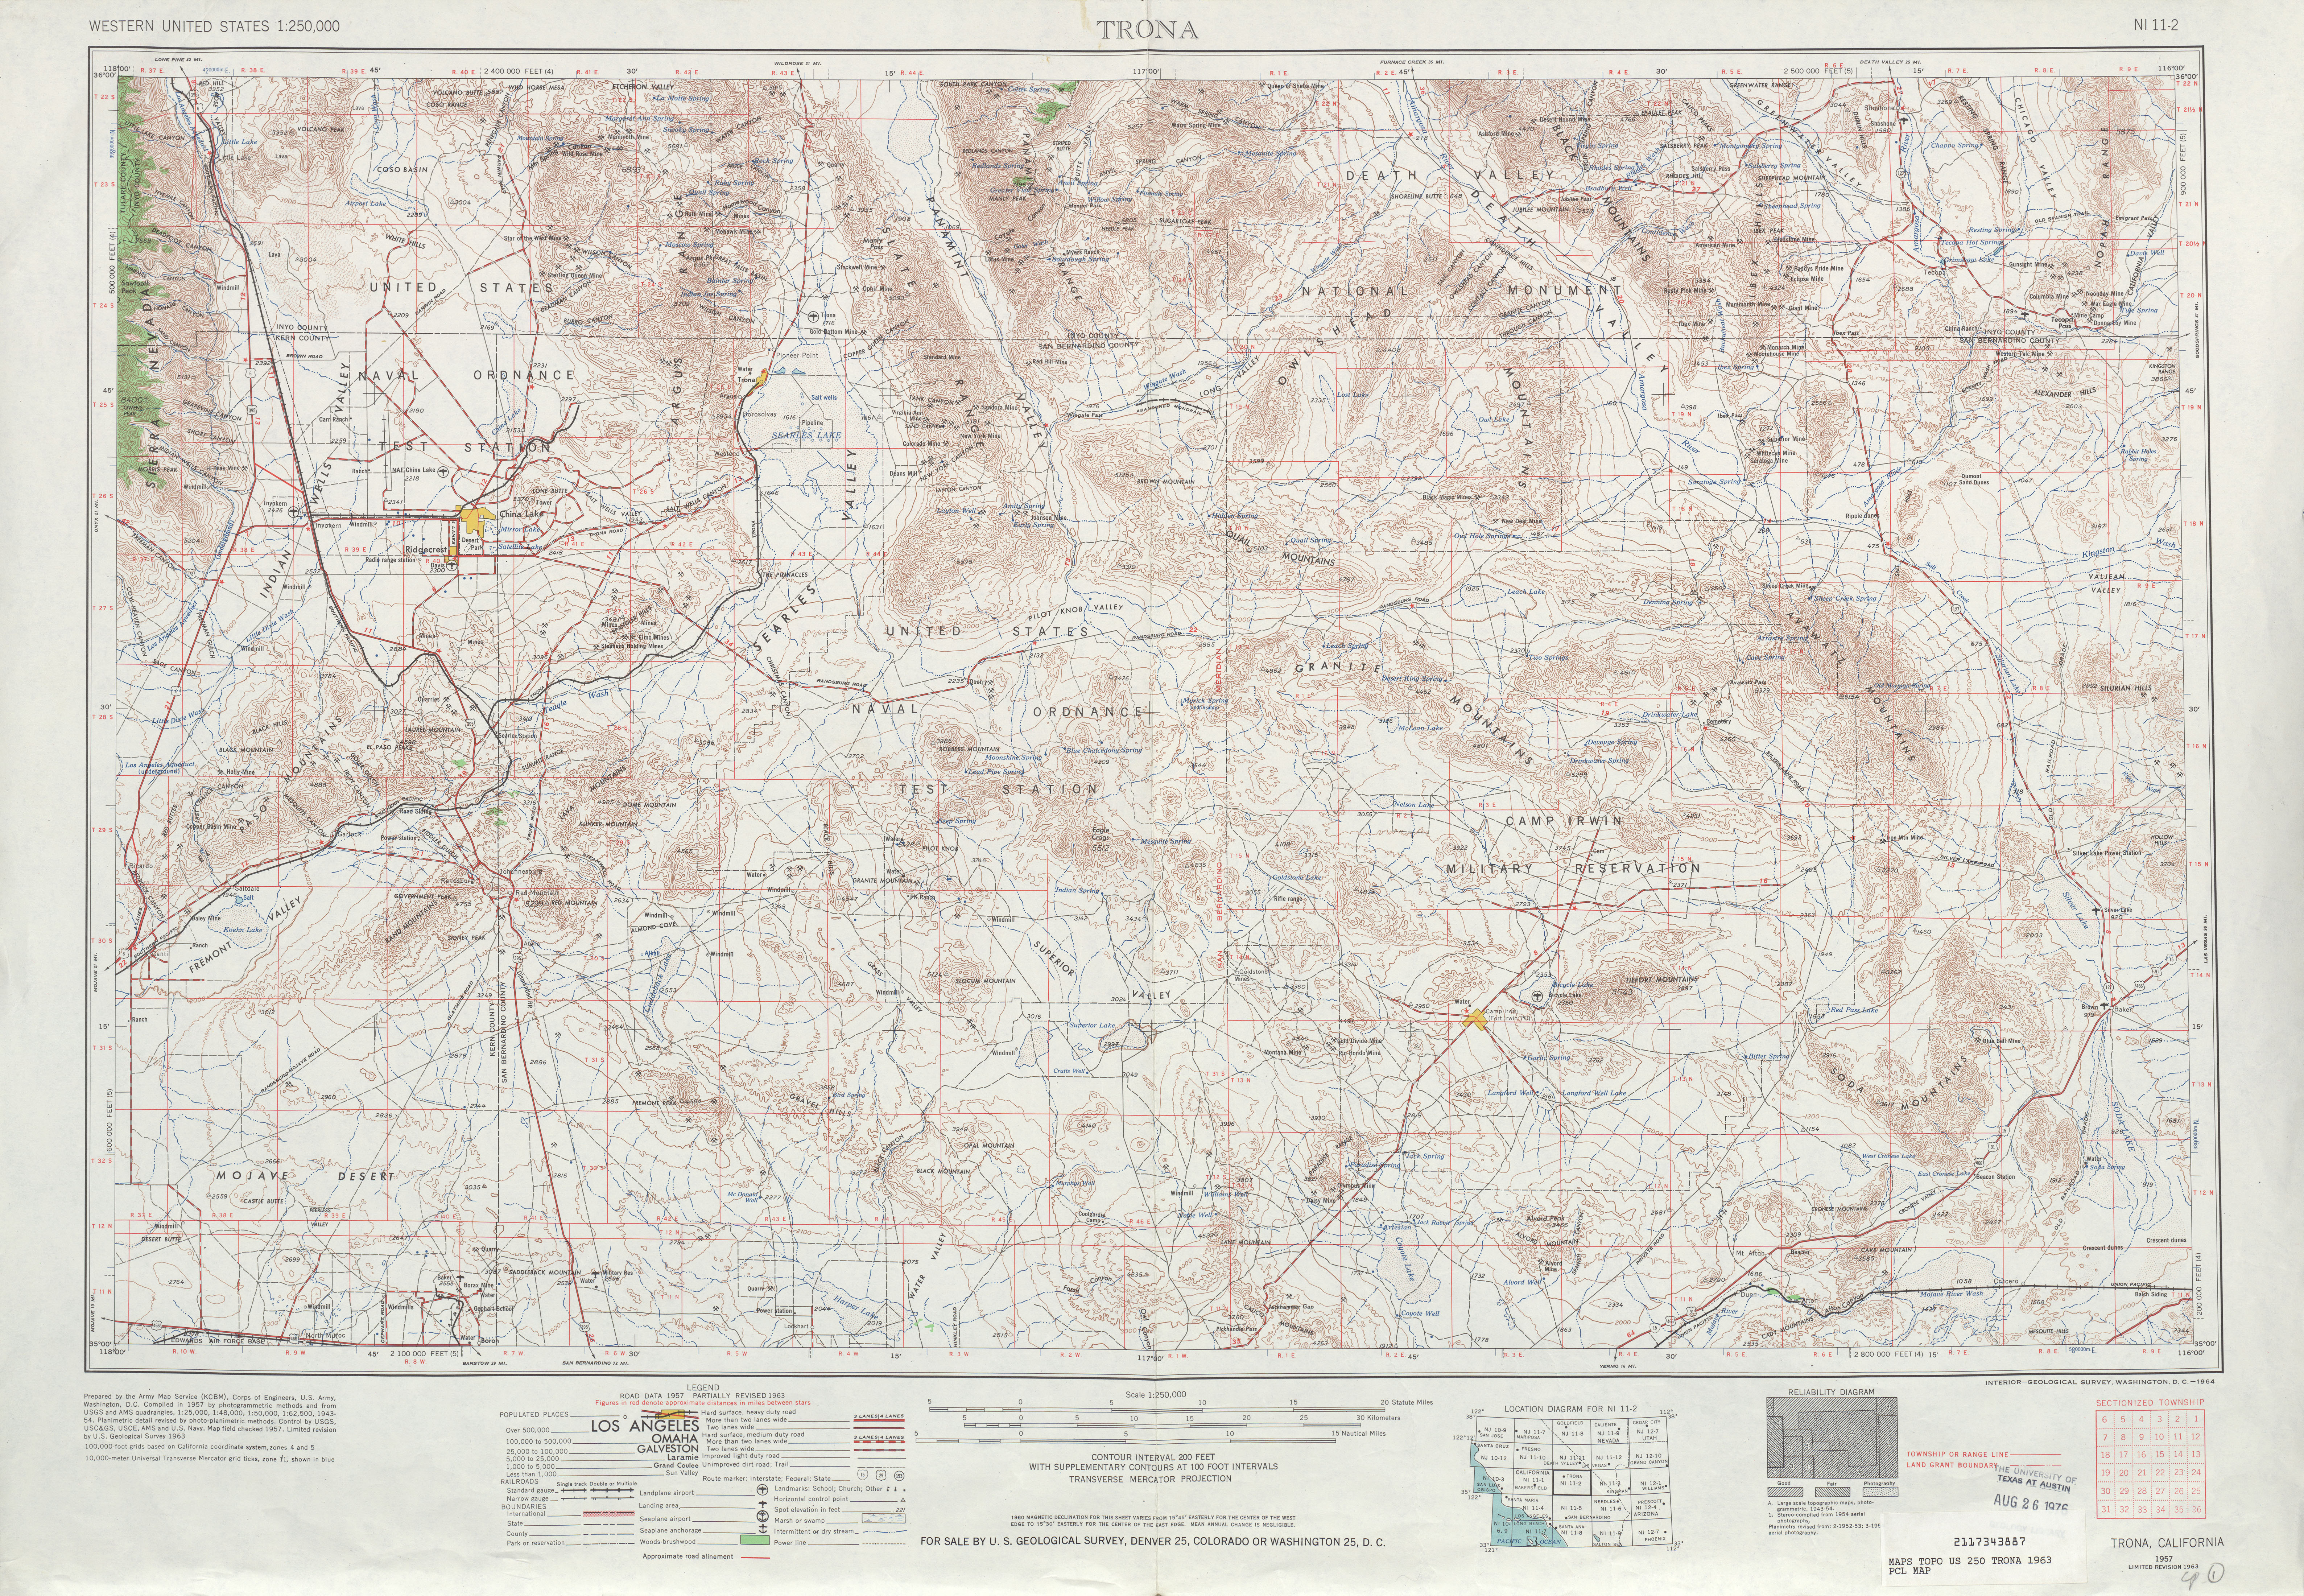 Trona Topographic Map Sheet, United States 1963